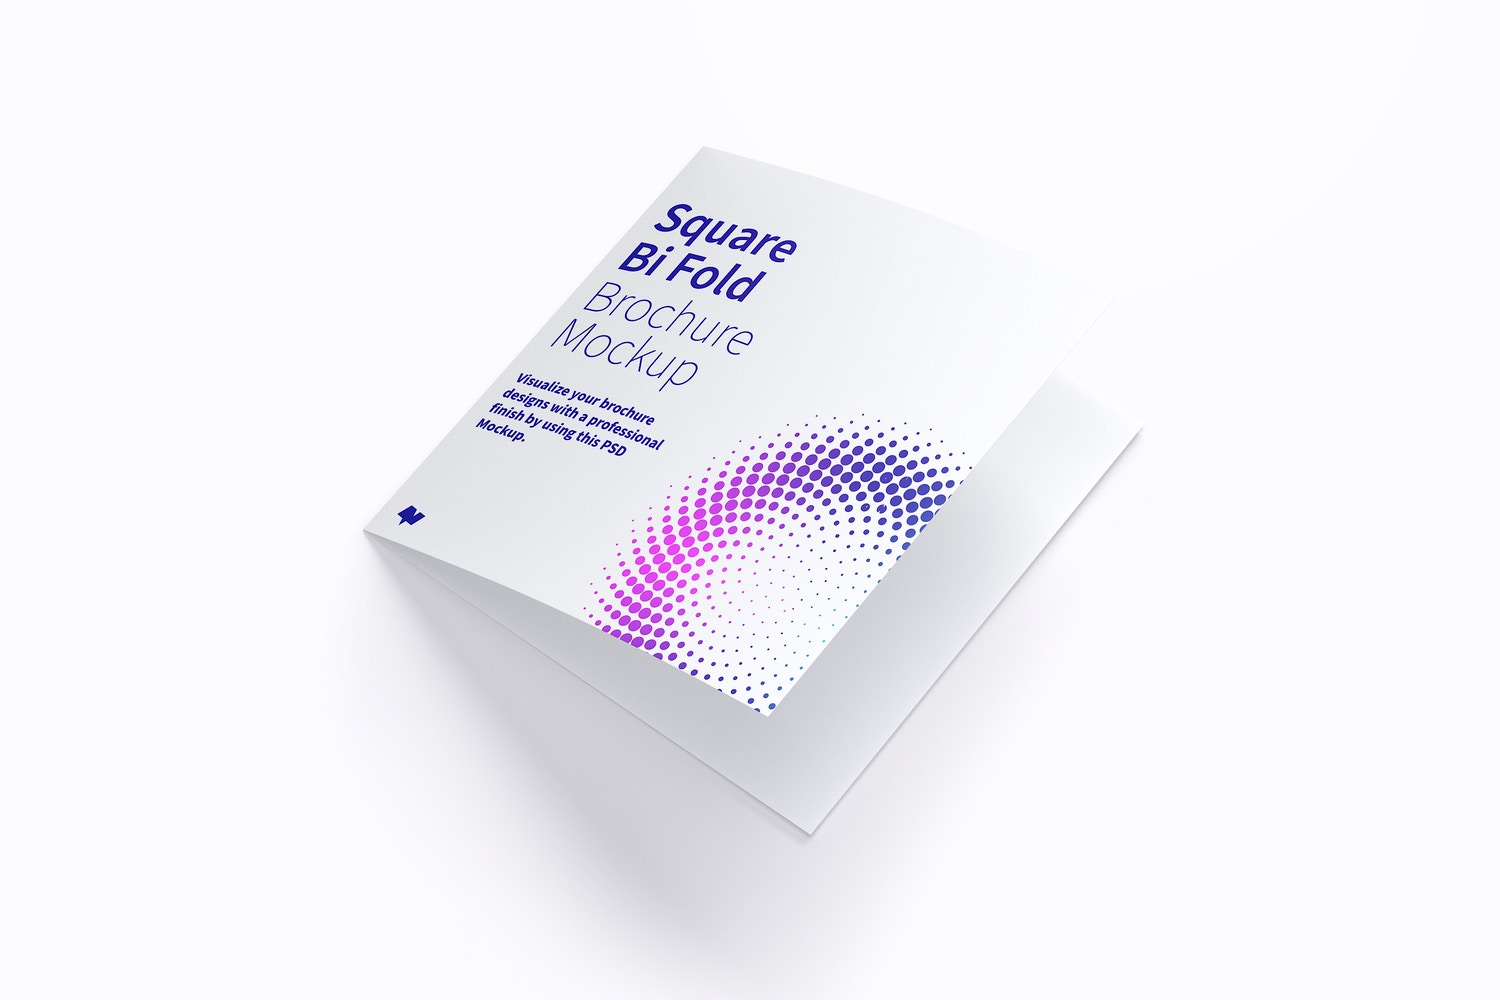 Square Bi Fold Brochure Mockup 01 by Original Mockups on Original Mockups